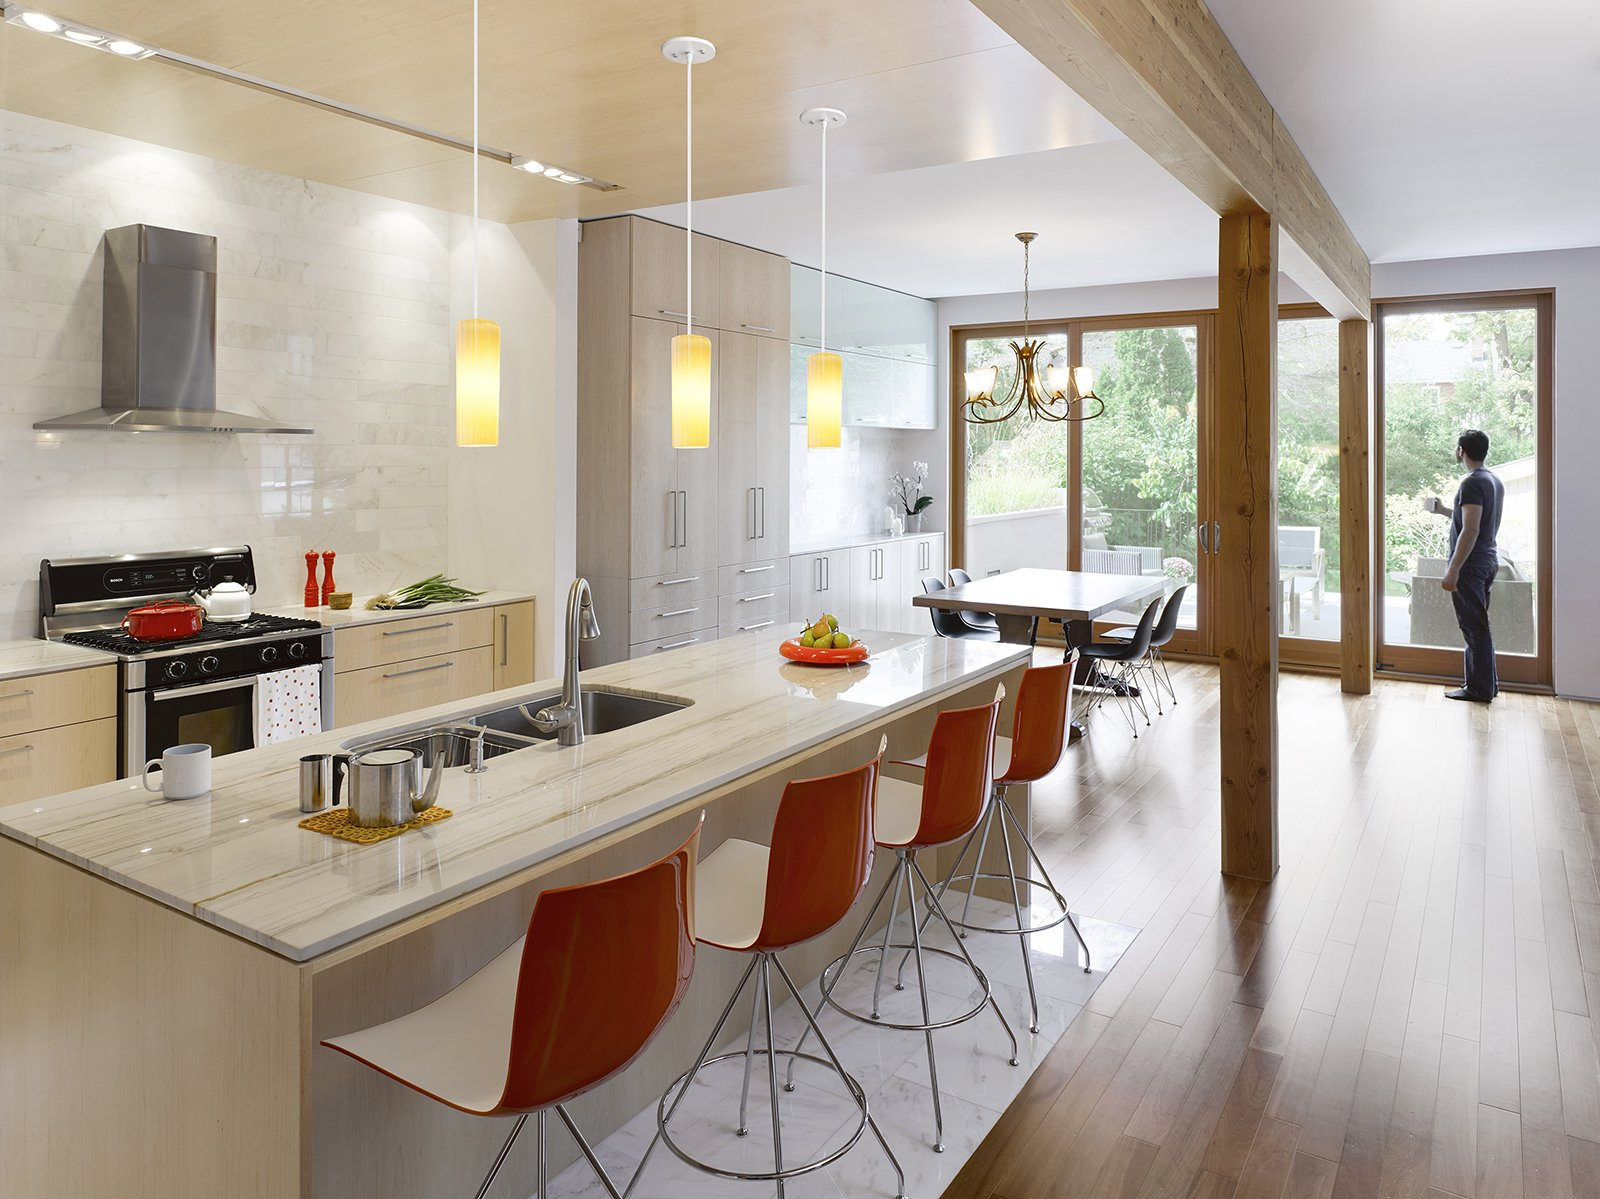 "The kitchen is outfitted with a duel-fuel range by Bosch, a Diamonte Canopy hood by Faber, a LaPerla dishwasher by Miele, French-door refrigerator by LG, Blanco sink, and Compact Smart overn by Breville. Catifa 46 stools by Arper are stationed at the bar. The counters are quartz and the cabinets are solid maple. ""Given that the owners' intention was to stay and age in the house, we decided that the materials needed to be elegant and timeless and, in essence, could also age well in place,"" Tedesco says. ""This led to devising a refined and warm palette of natural finishes. White carrara marble, oiled clear Douglas fir, and maple floors and millwork create a light, warm interior with a reddish hue that emanates when the sunlight washes the woods. The selection process included R-and-D on the materials to assess their ability to be both robust enough to handle every day wear and tear in the short term and acquire a beautiful patina long term. We also researched MSDS charts to ensure they were safe, non-toxic, and would not off-gas.""  Photo 4 of 11 in Smart Tech Makes this Modern Home Ultra Energy Efficient"